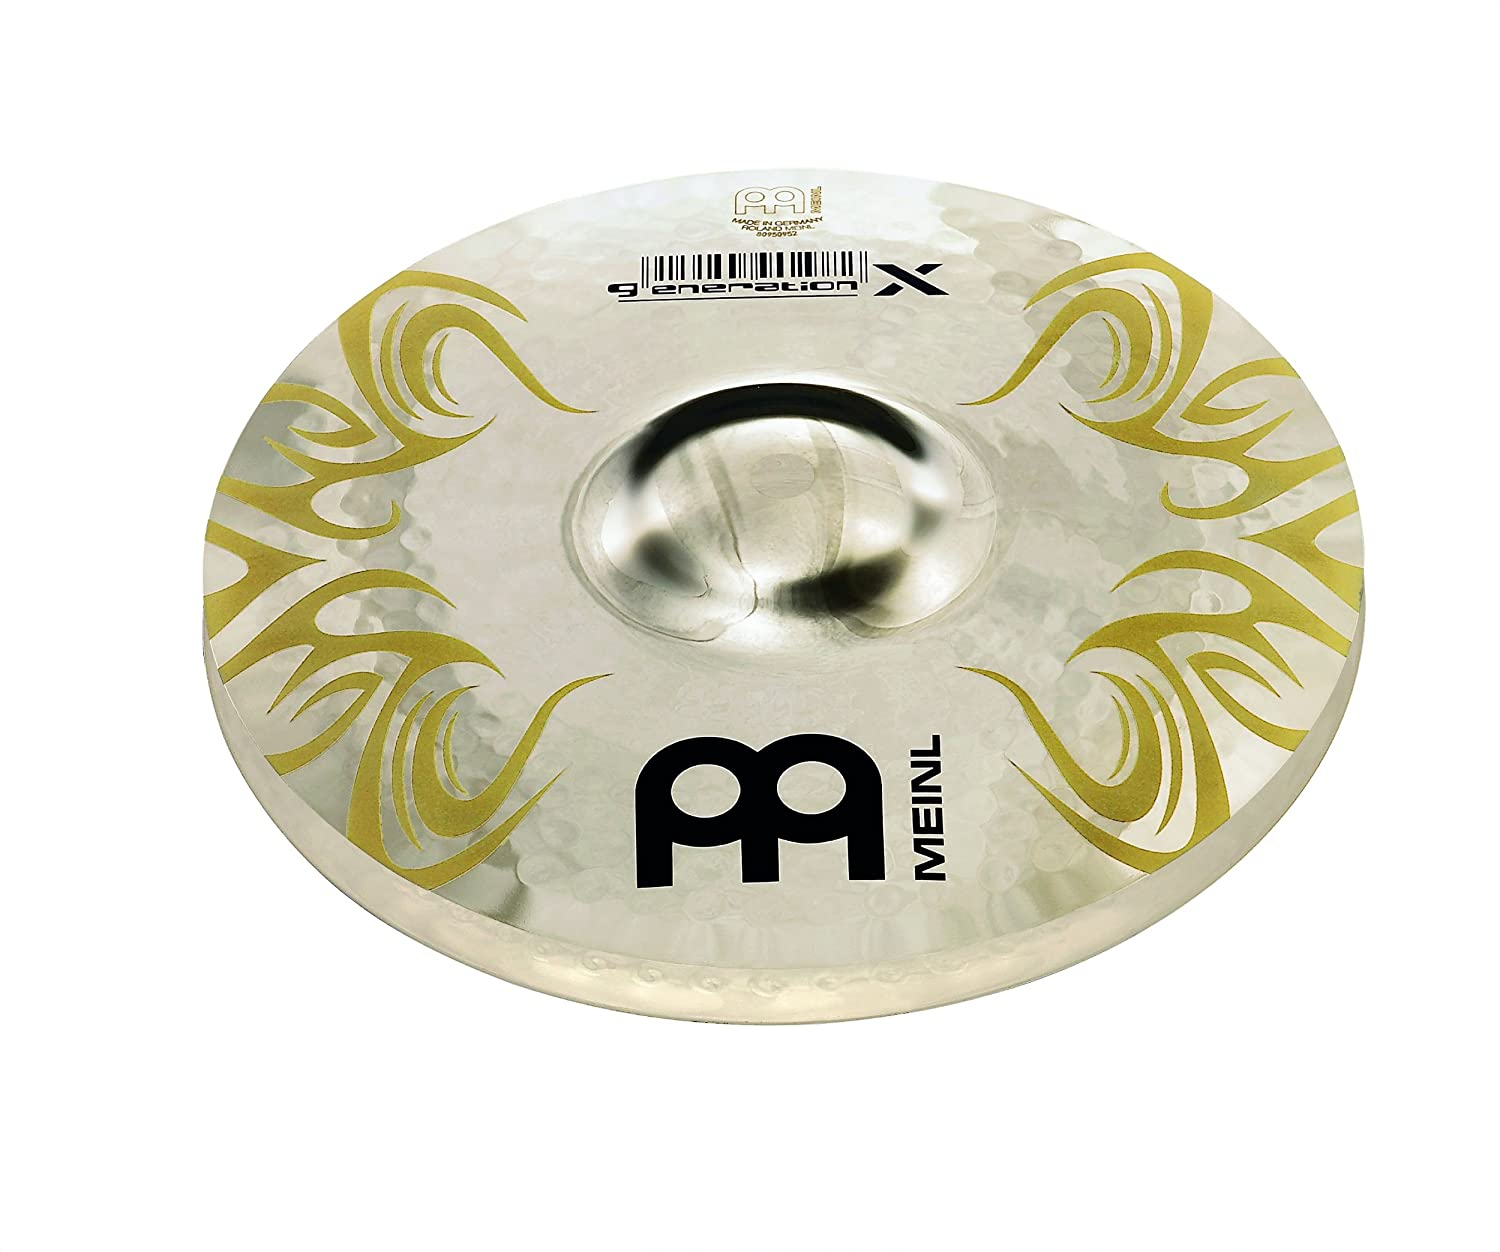 Meinl Cymbals GX-8FXH Generation-X 8-Inch FX Auxiliary Hi-Hat Cymbal Pair